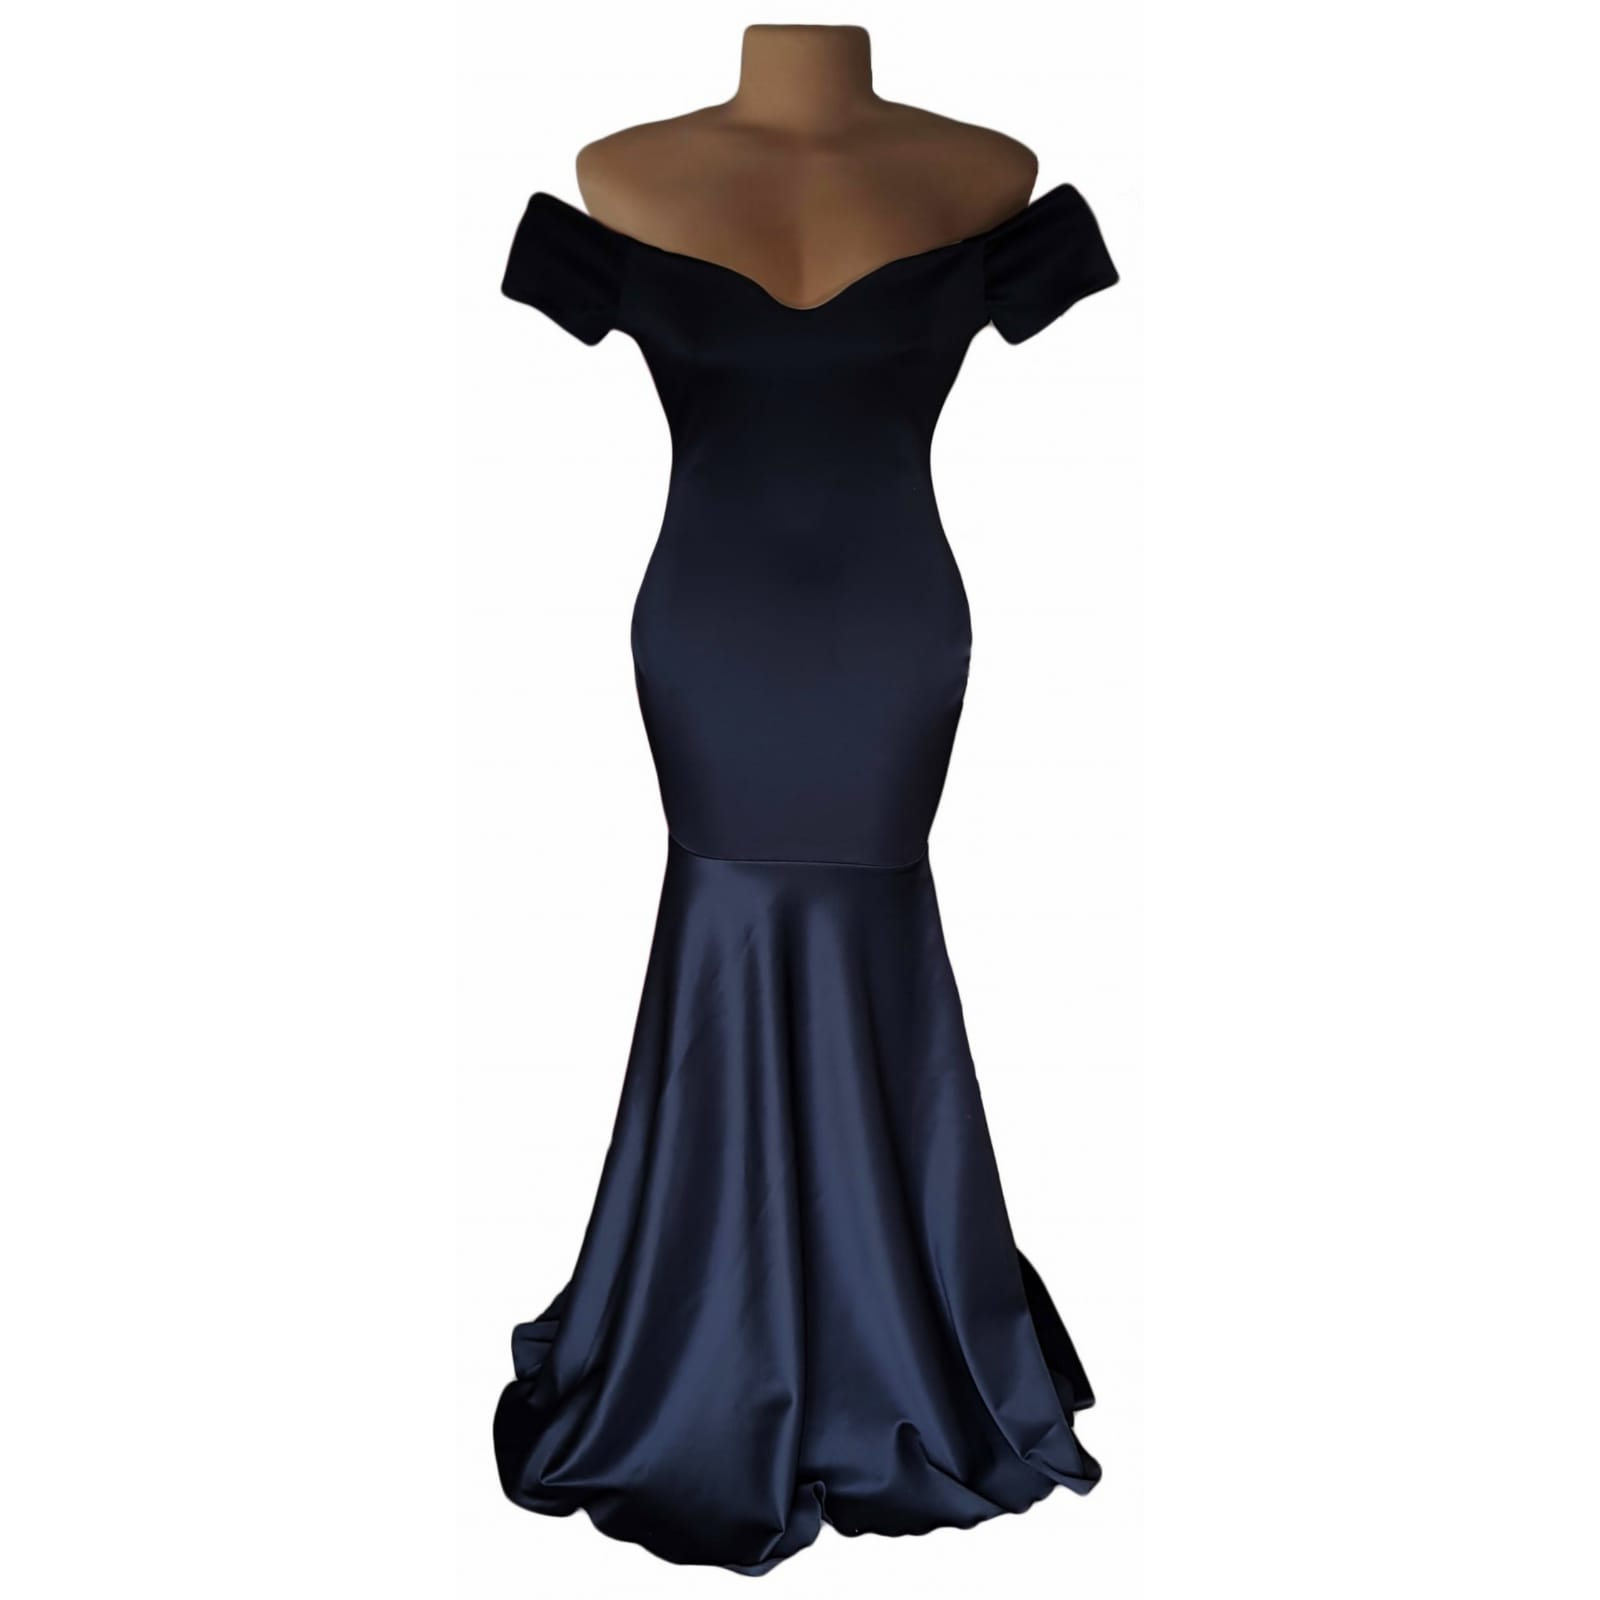 Off shoulder black soft mermaid prom dress 2 off shoulder black soft mermaid prom dress with a train and off shoulder cap sleeves